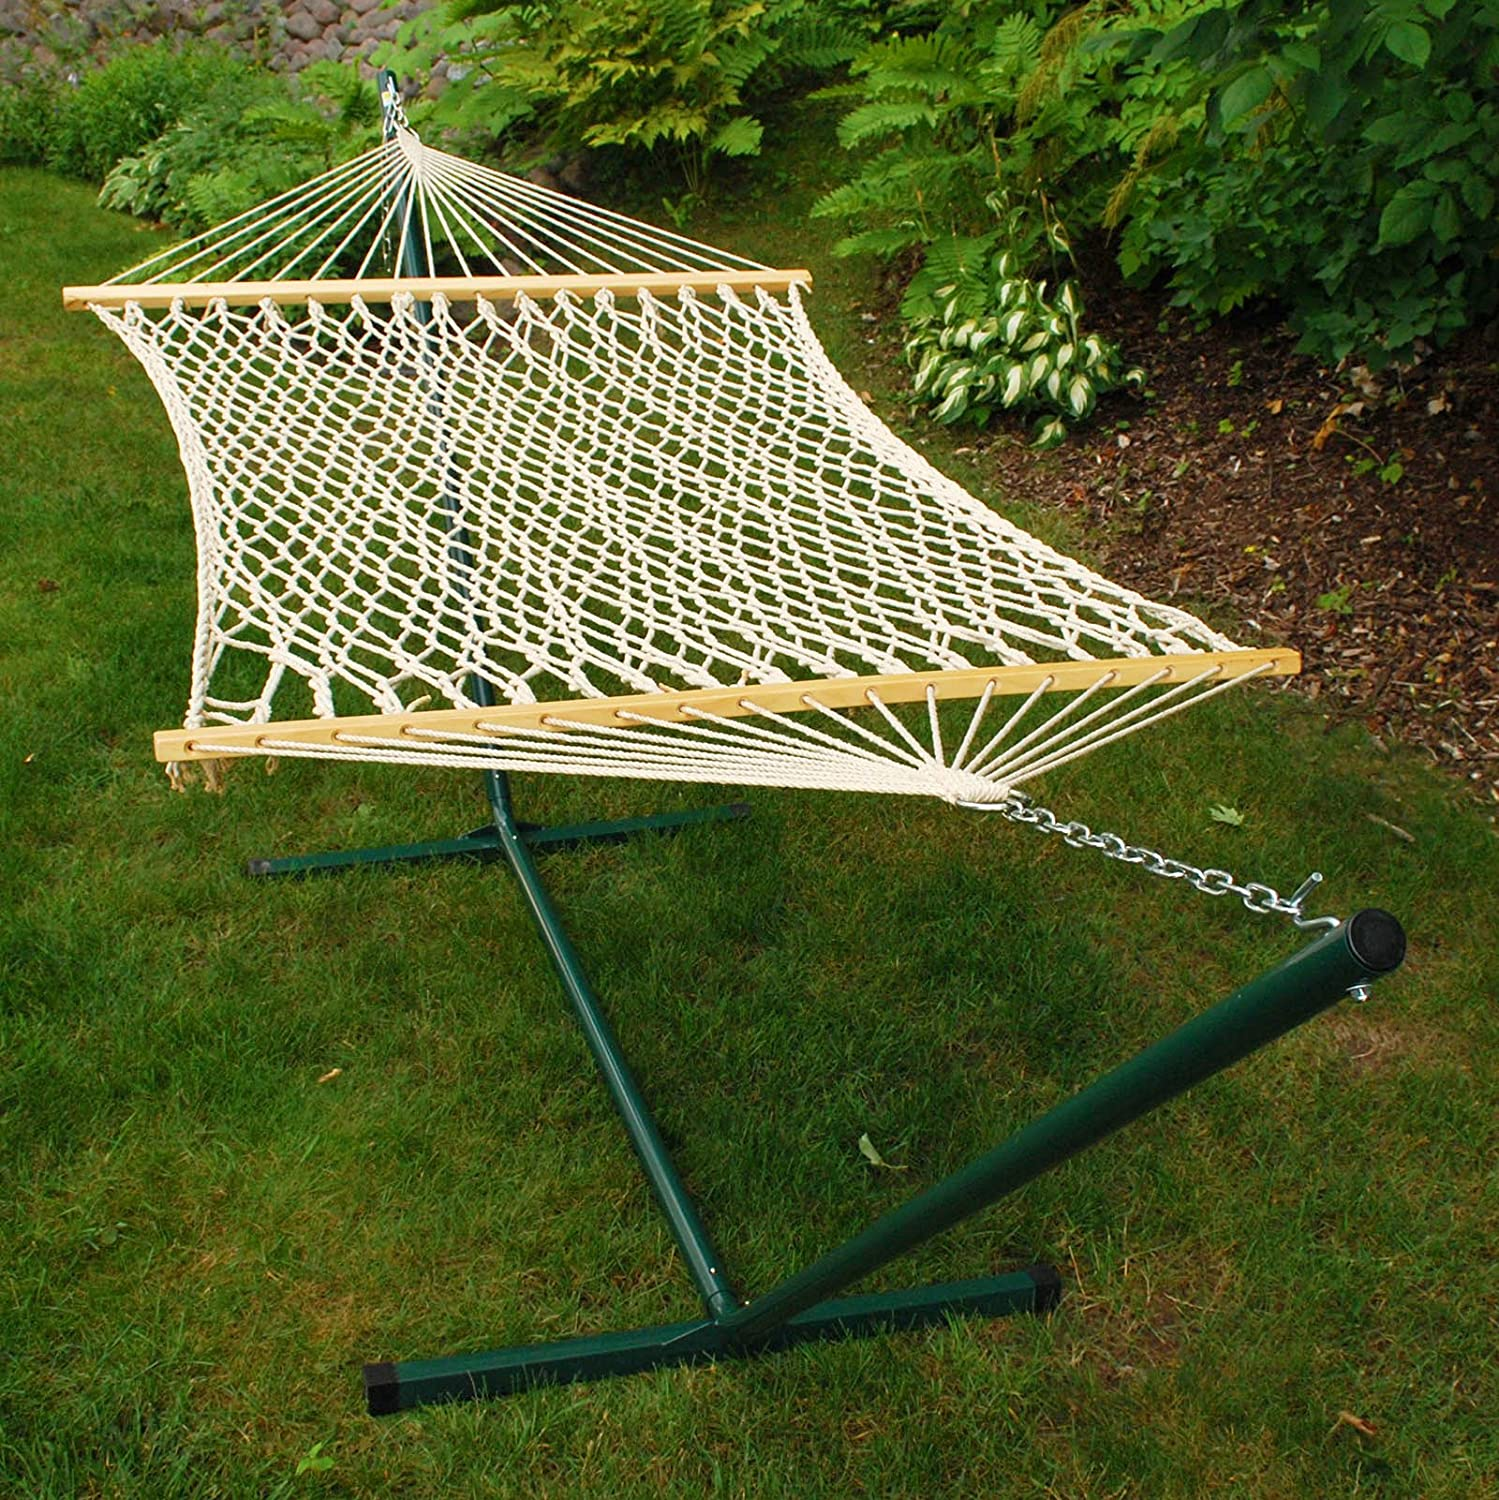 amazon     algoma 6250 two point inidual rope hammock and stand  bo   hammock with stand   garden  u0026 outdoor amazon     algoma 6250 two point inidual rope hammock and      rh   amazon